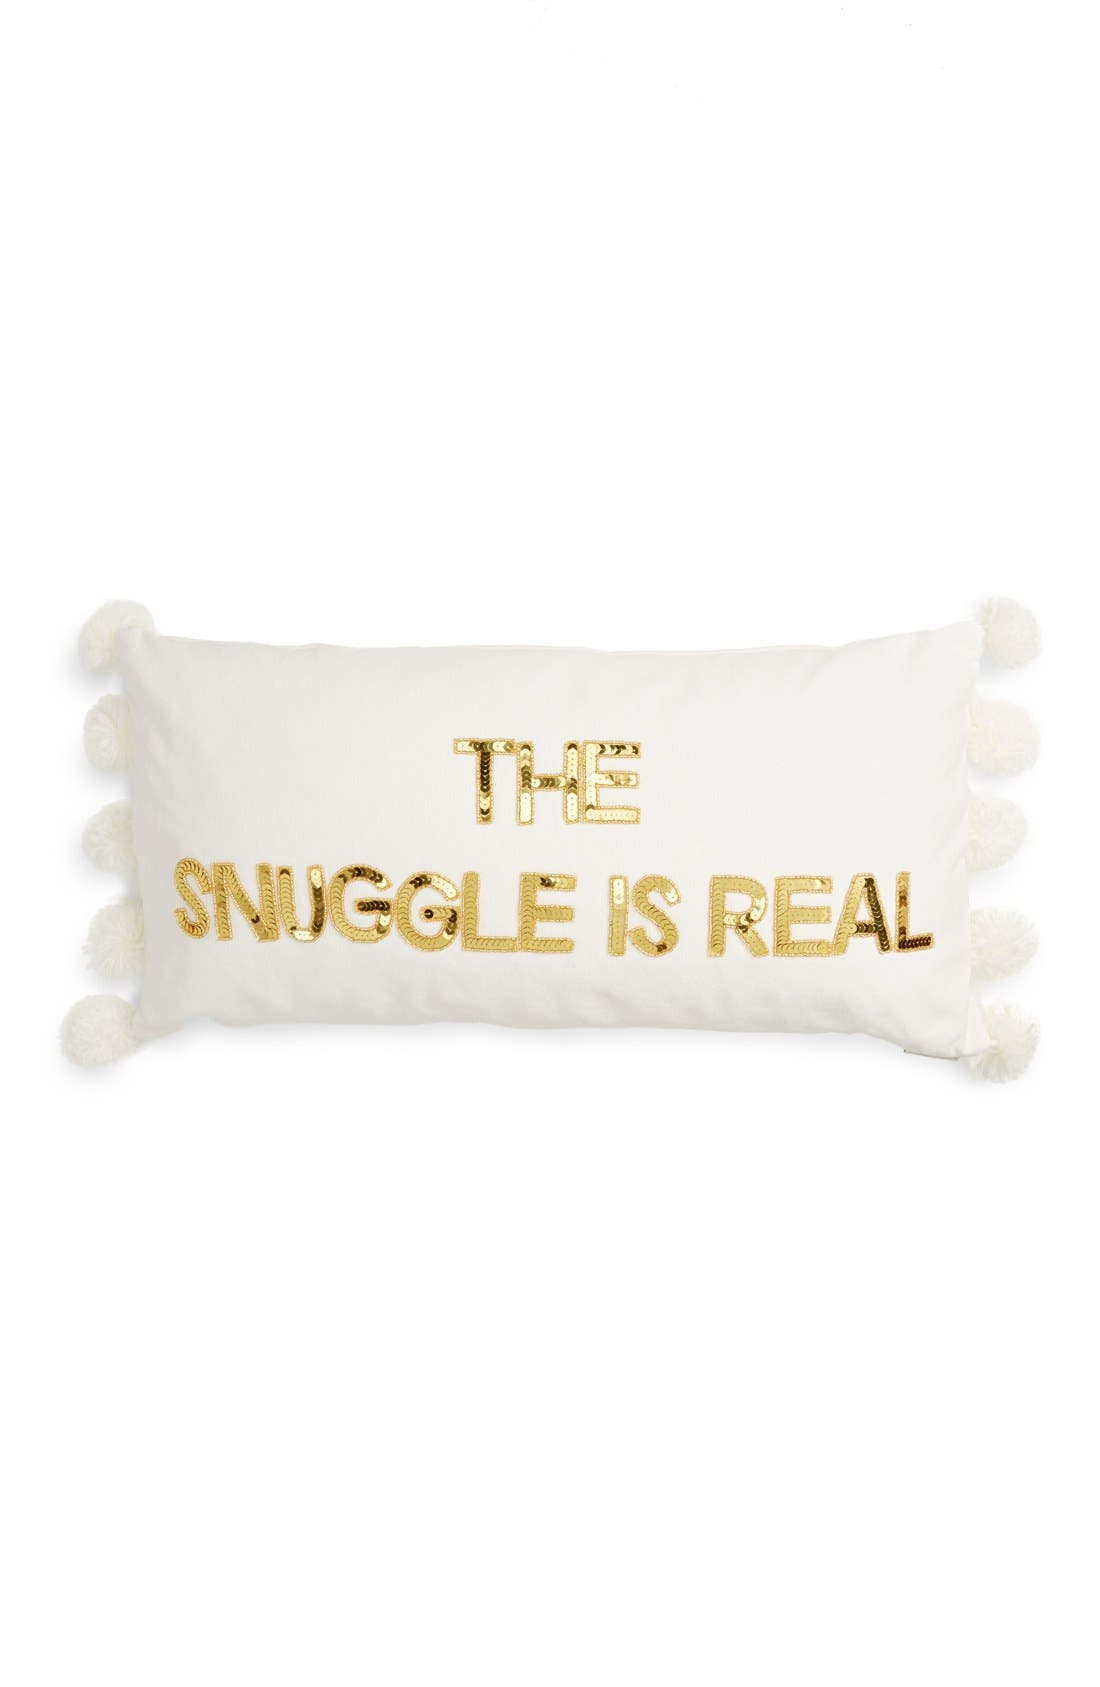 Alternate Image 1 Selected - Bow & Drape Snuggle is Real Acccent Pillow